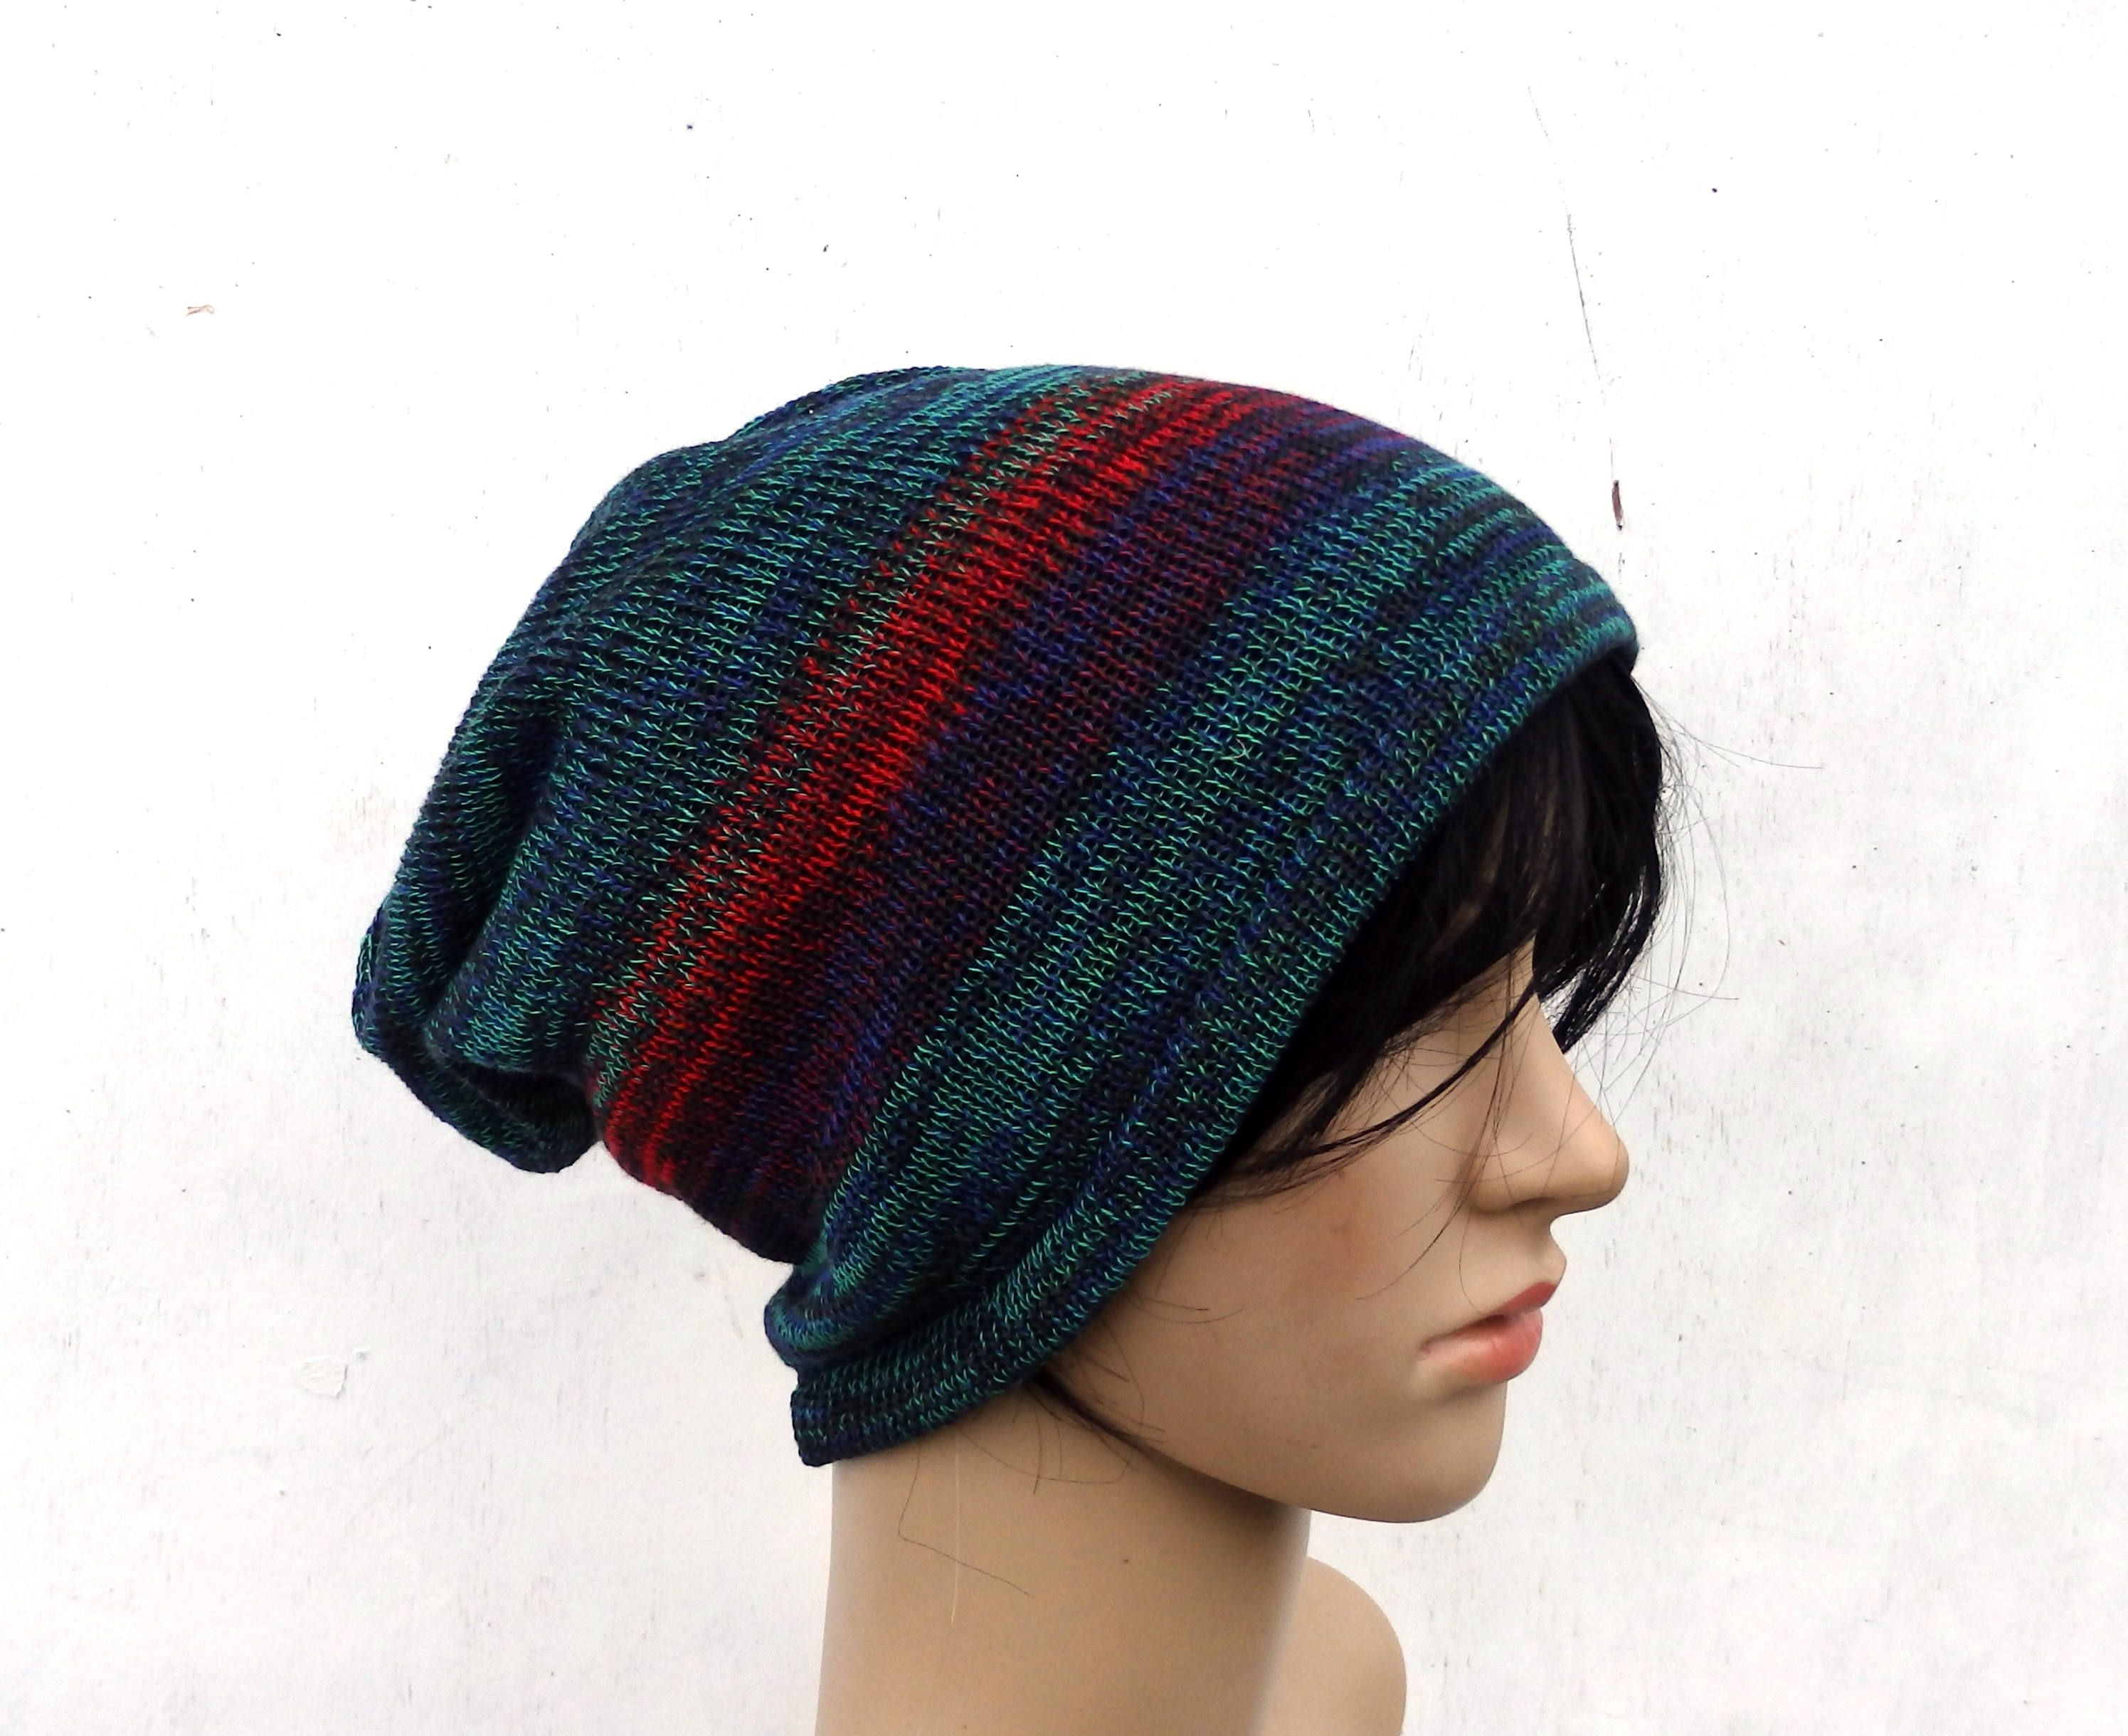 ff1e50257 Hat, knitted cotton hat, knitting colorful summer beanie, knit ...